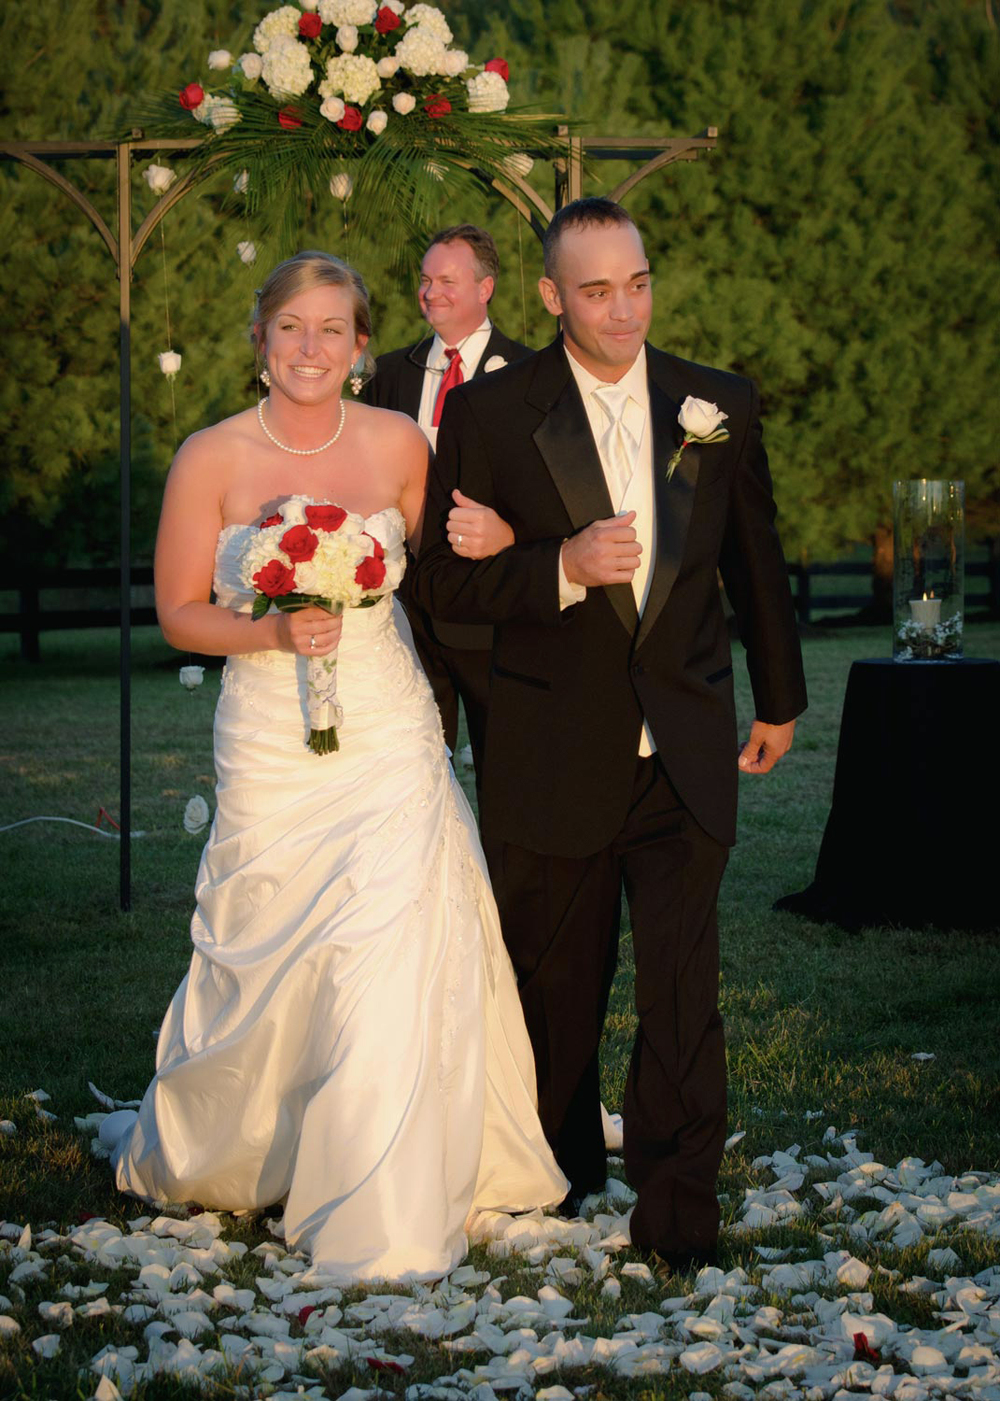 wedding_photographer_lexington_ky_studio_walz178.jpg